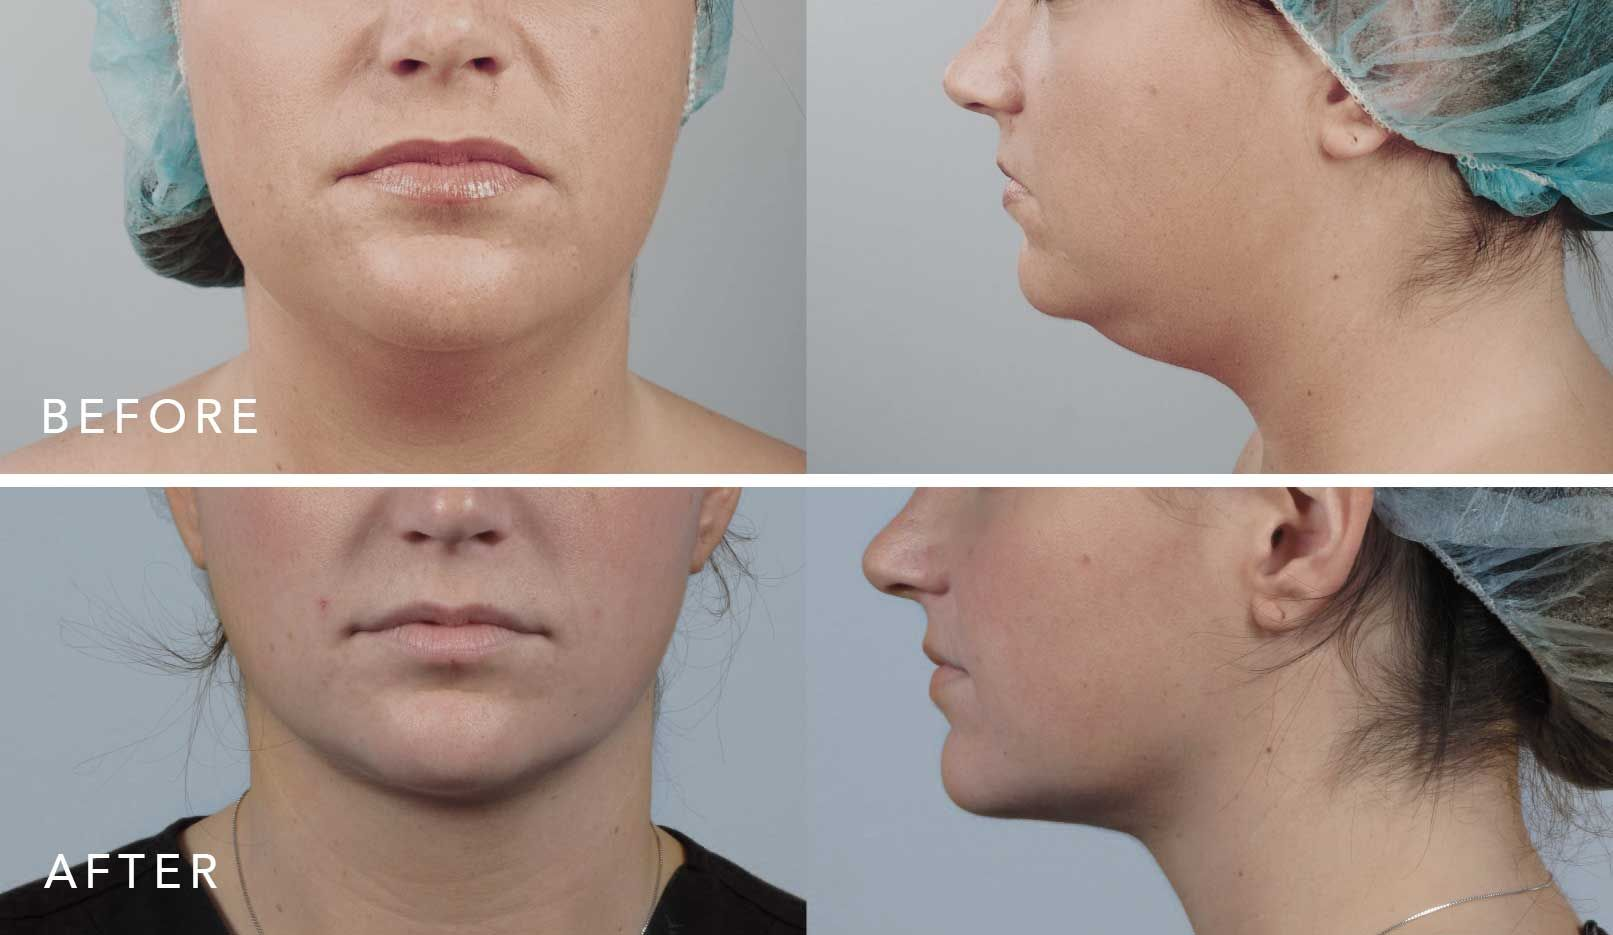 scarless neck lift surgery before and after fat removal in the neck area